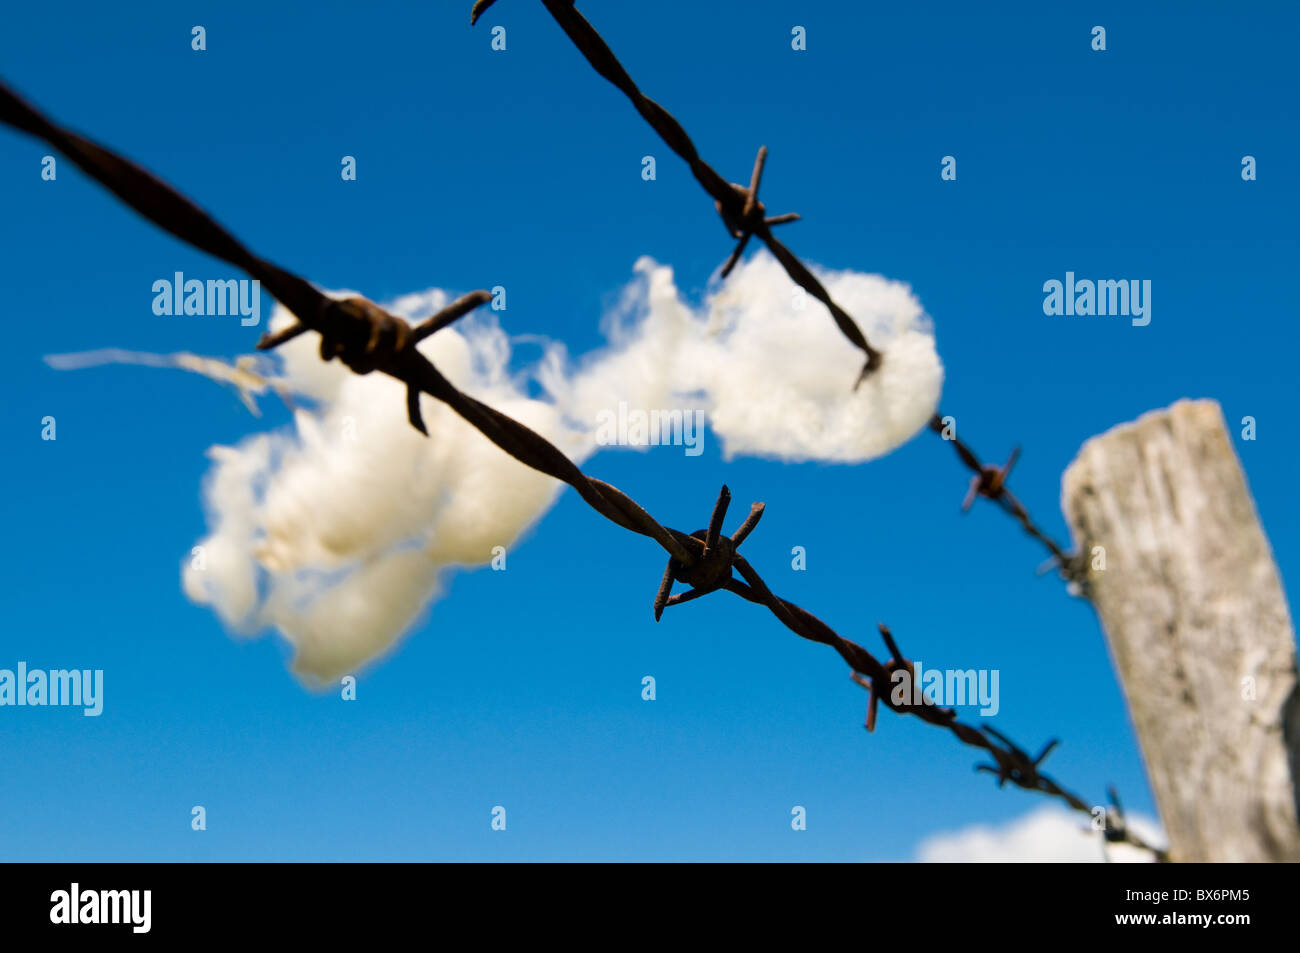 Wool Barbed Wire Stock Photos & Wool Barbed Wire Stock Images - Alamy